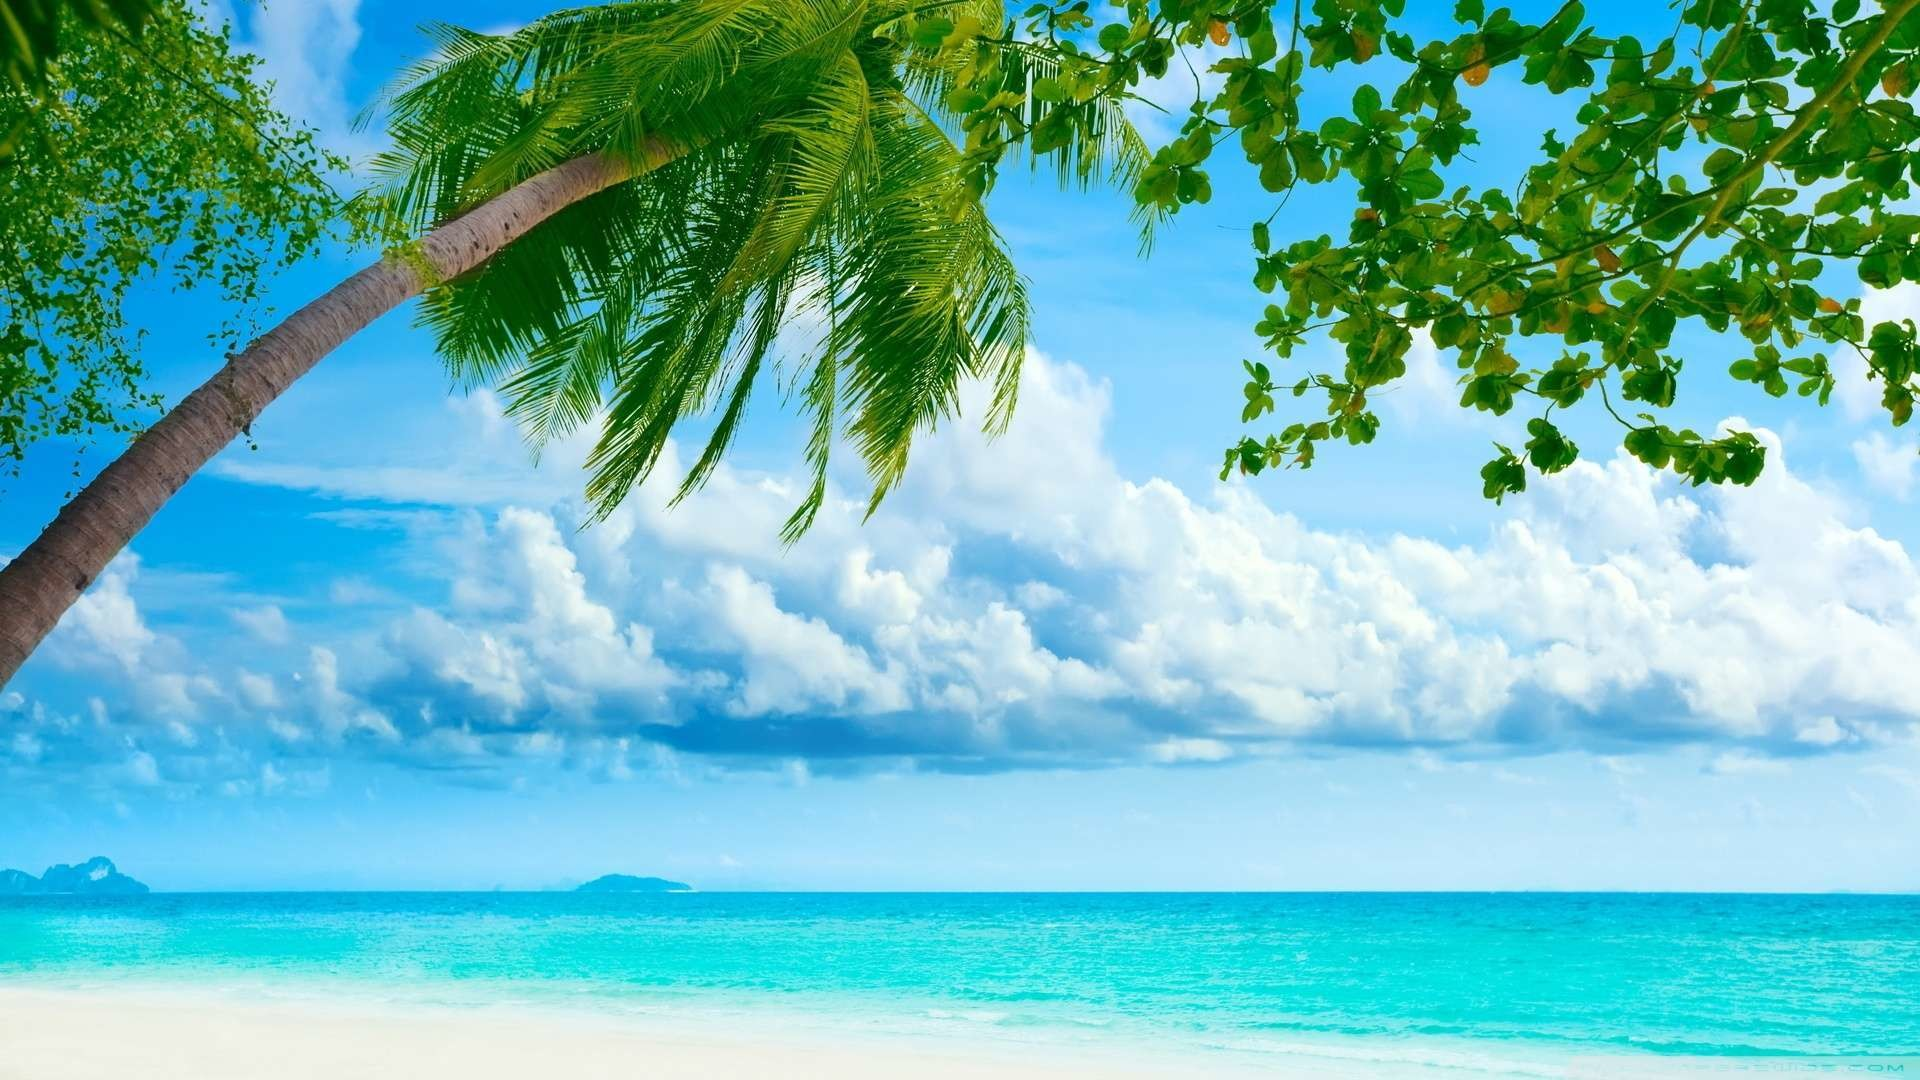 Wallpaper: Tropical Beach Resorts Wallpaper 1080p HD. Upload at .